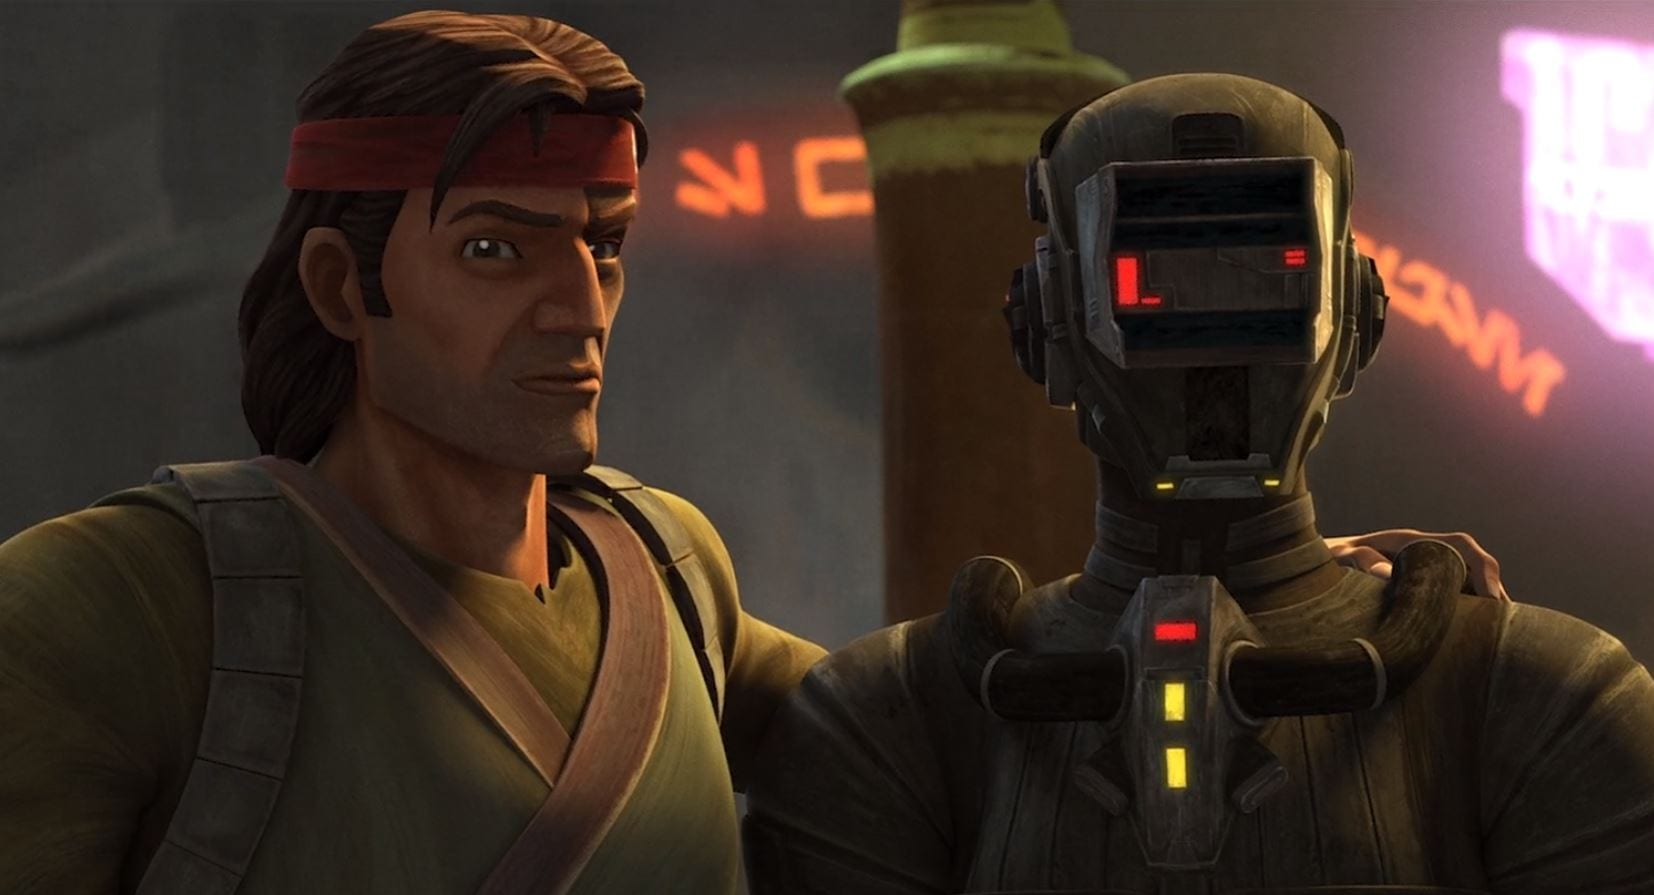 Star Wars: The Bad Batch Episode 5 Preview and Recap